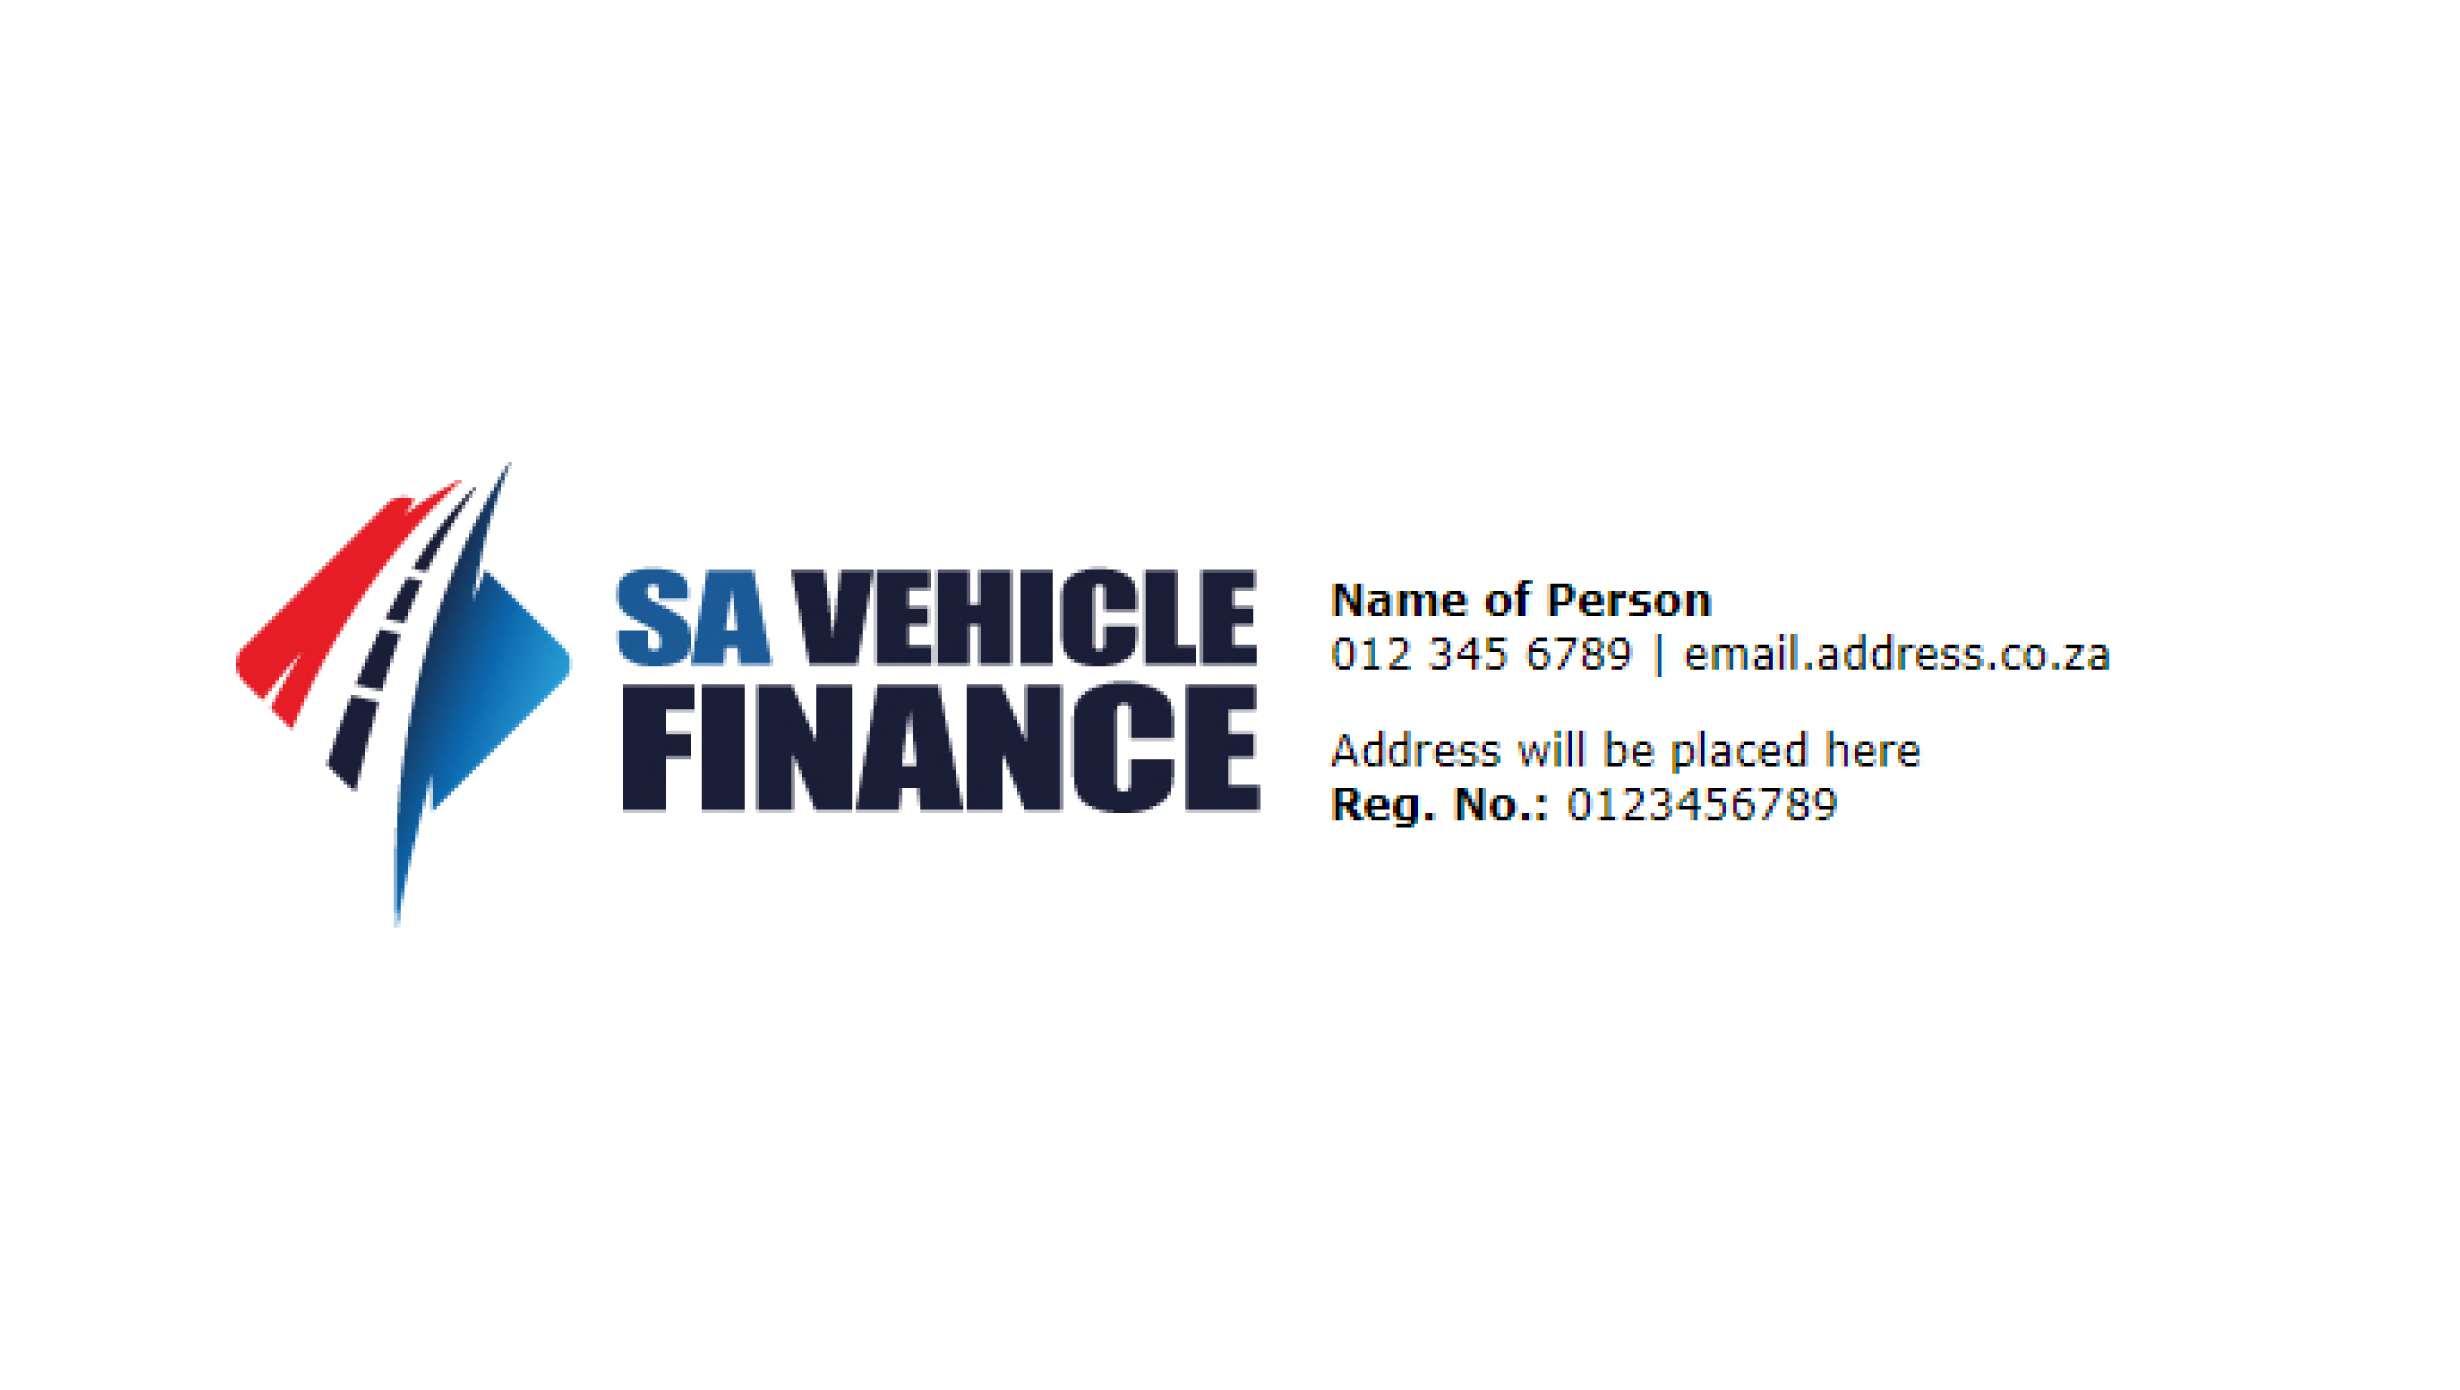 SA Vehicle Finance Email Signature Design